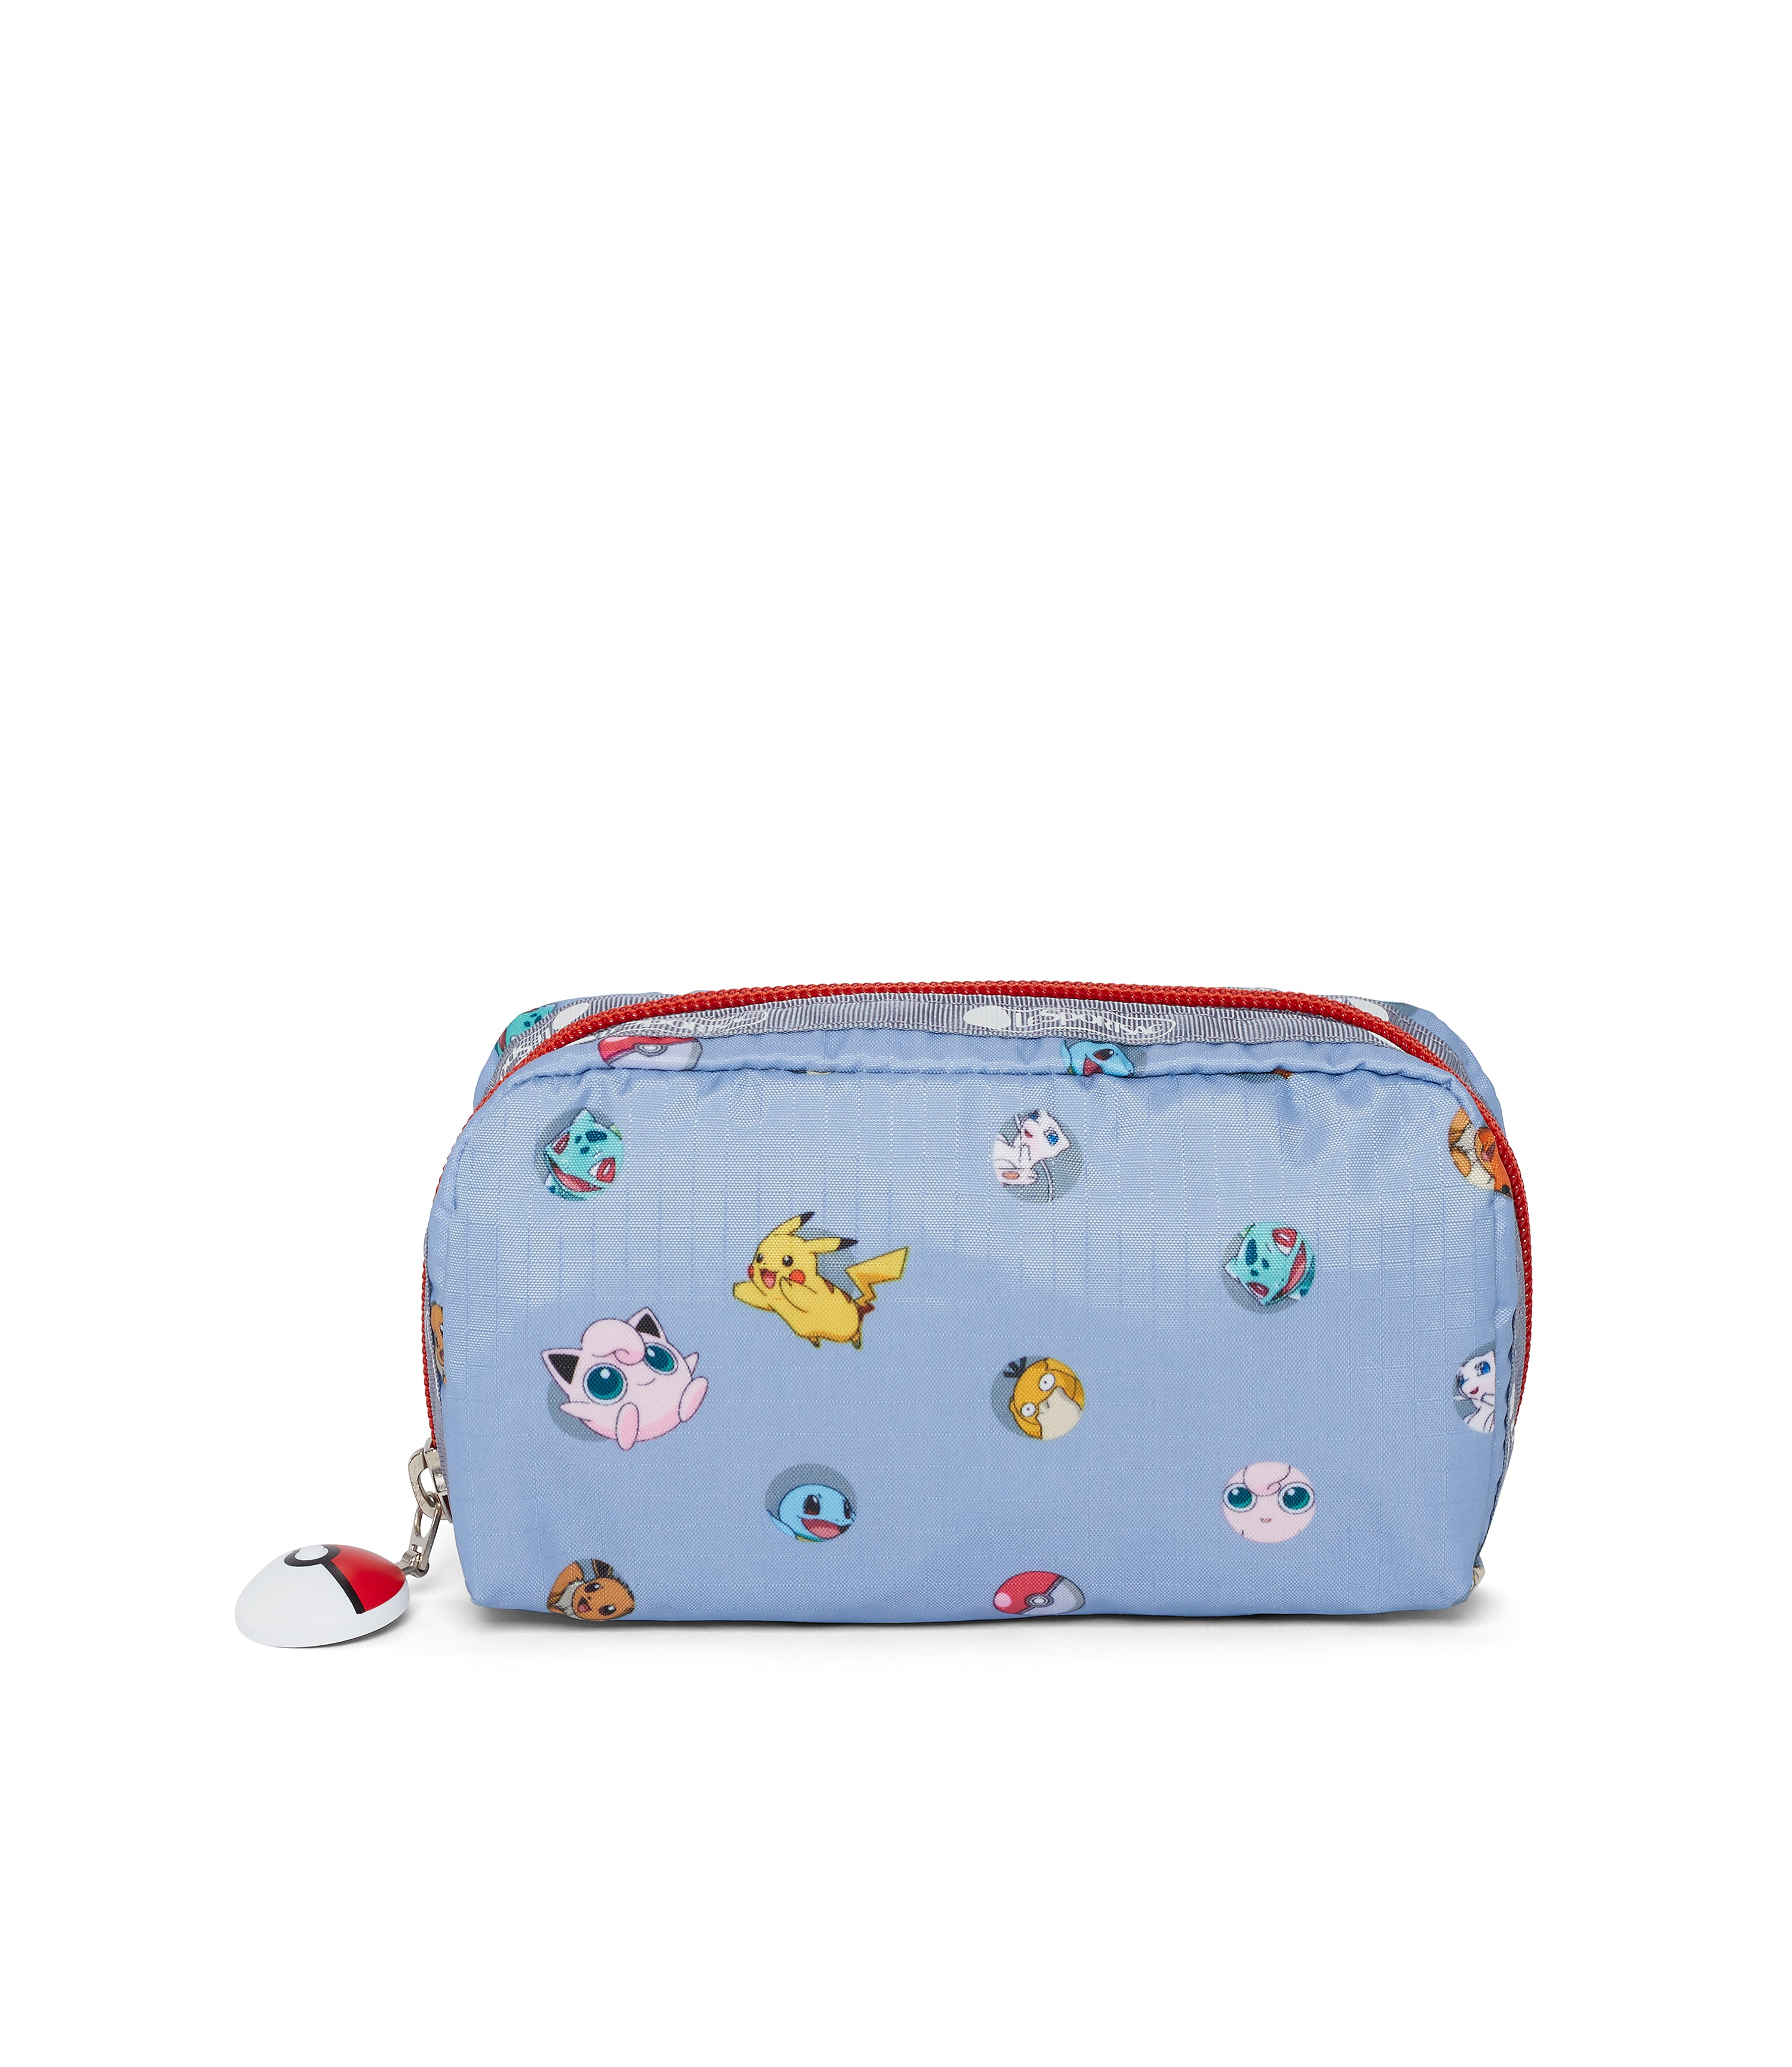 Pokémon Rectangular Cosmetic-LeSportsac-Small-PokéBall-Blue-pouch-front